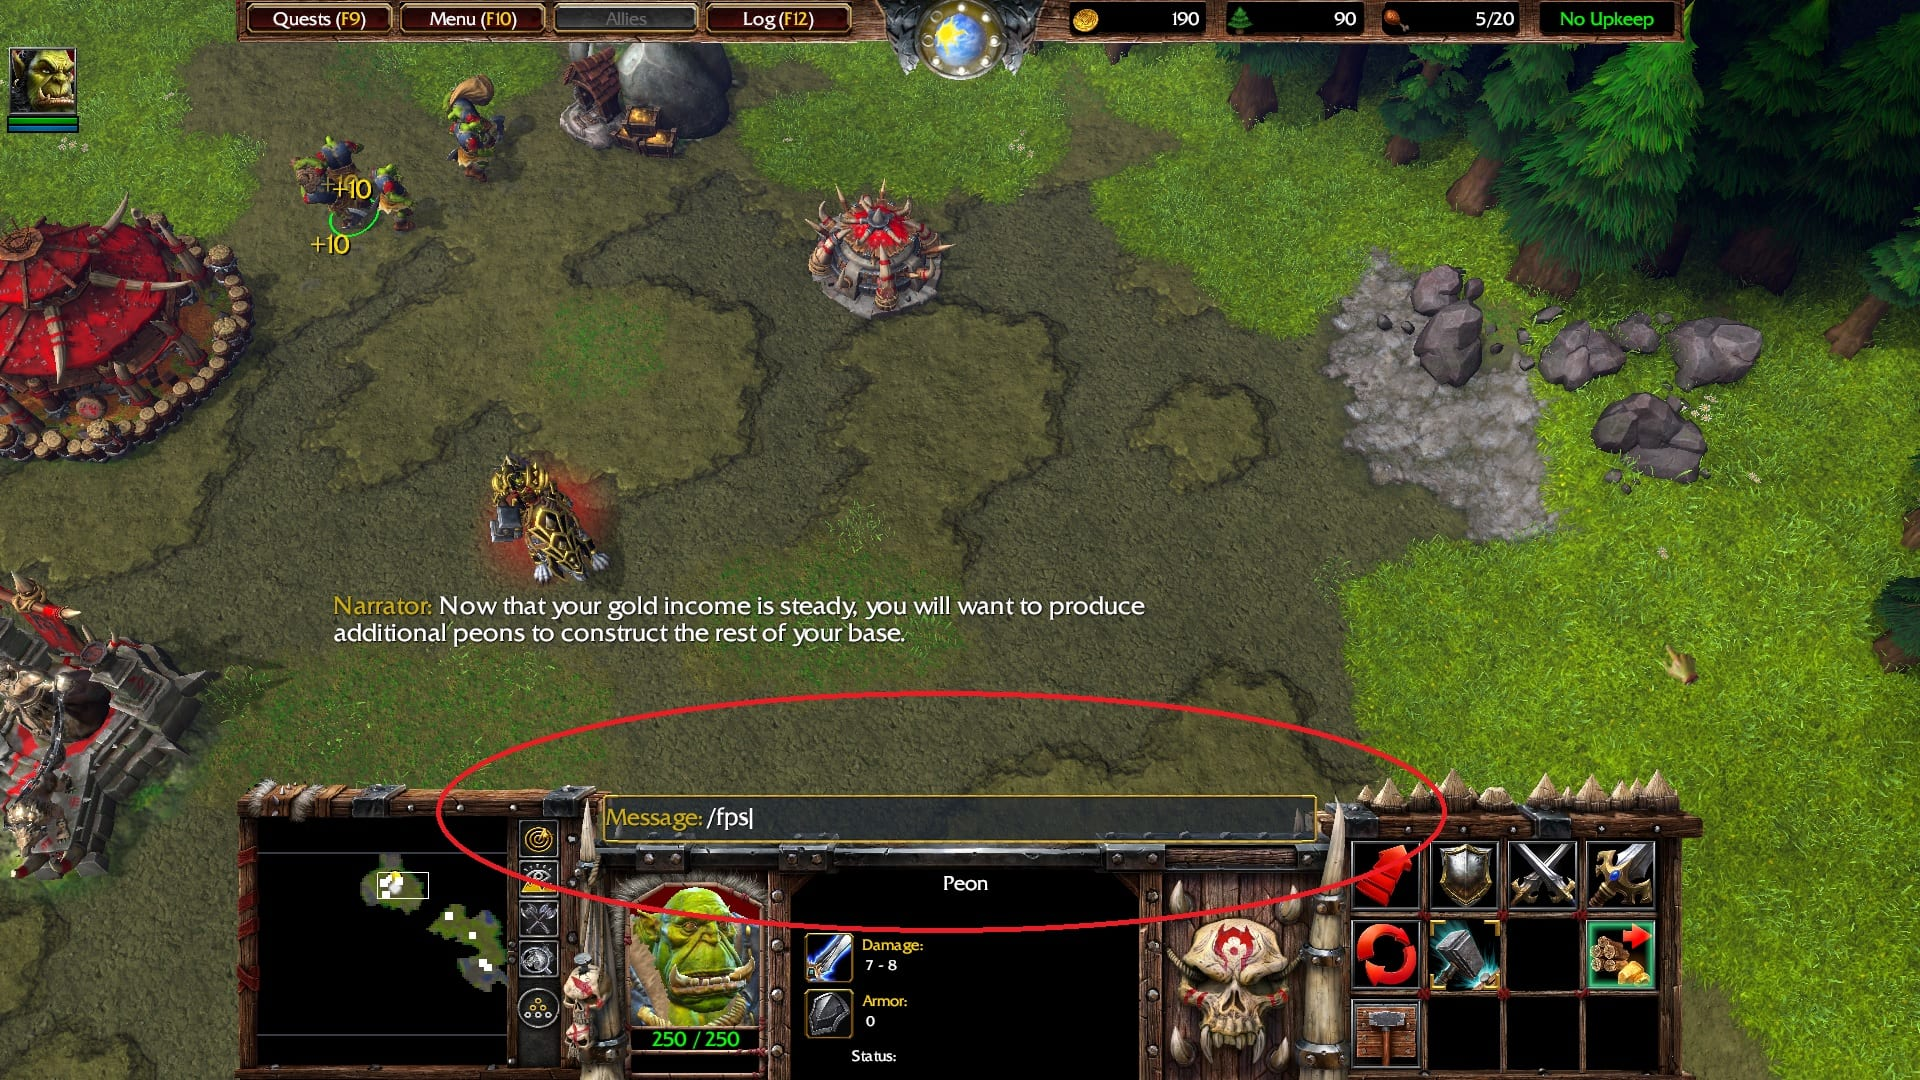 WarCraft 3 players upset over missing features on Reforged release